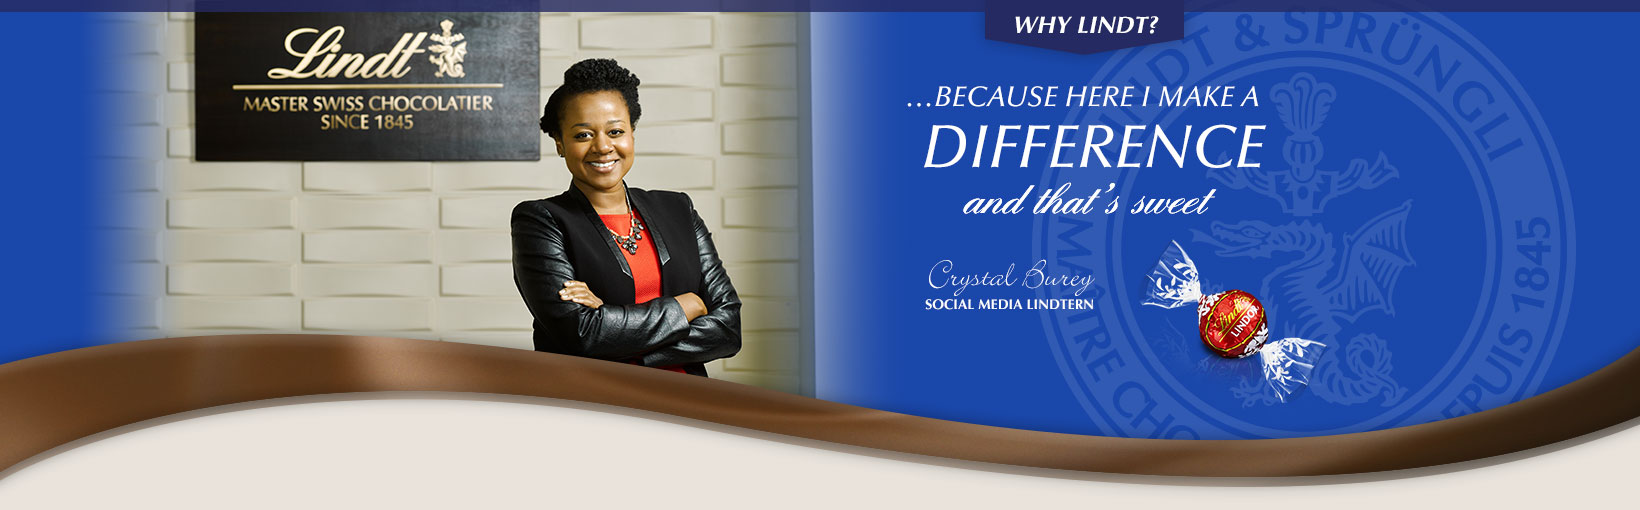 Why Lindt? …Because here I make a difference and that's sweet. Crystal Burey, Social Media Lindtern